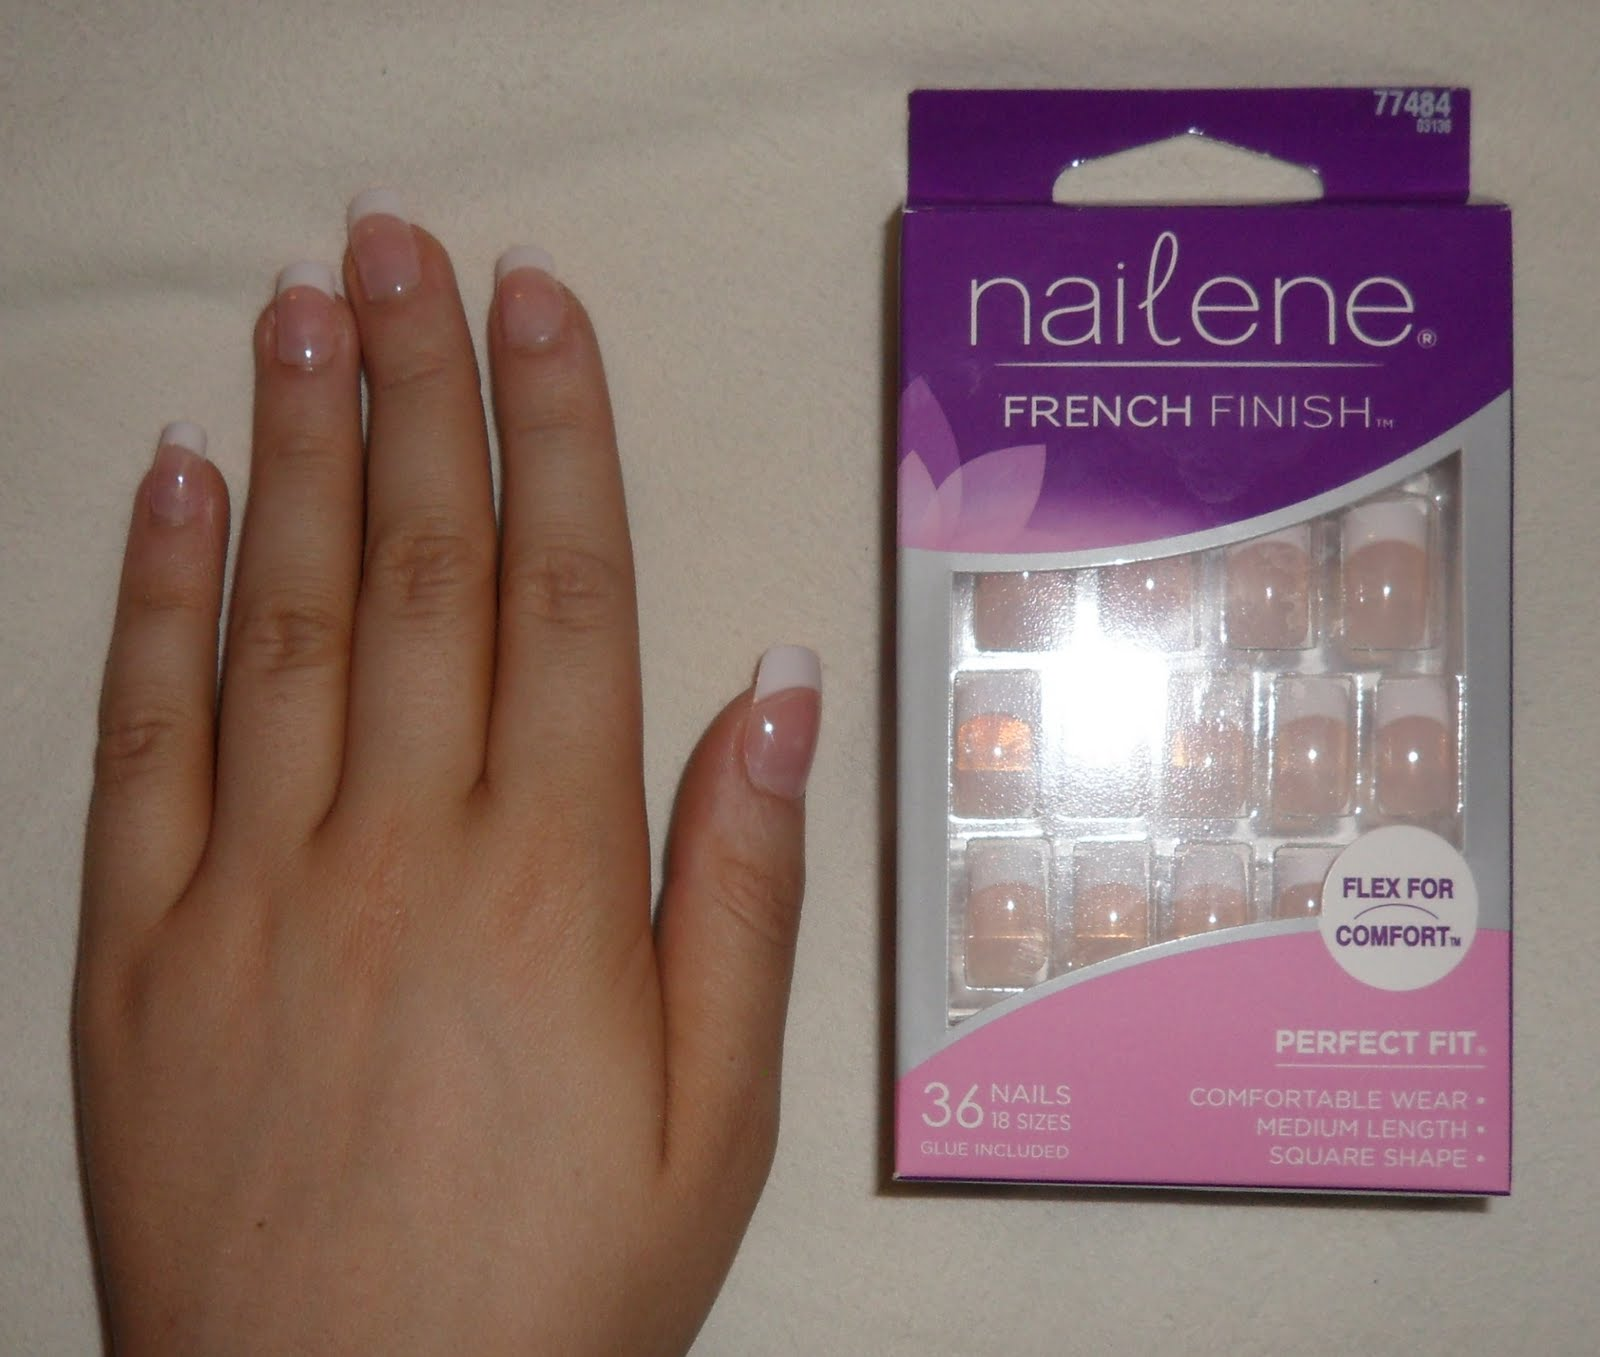 how to take off glue on nails without acetone